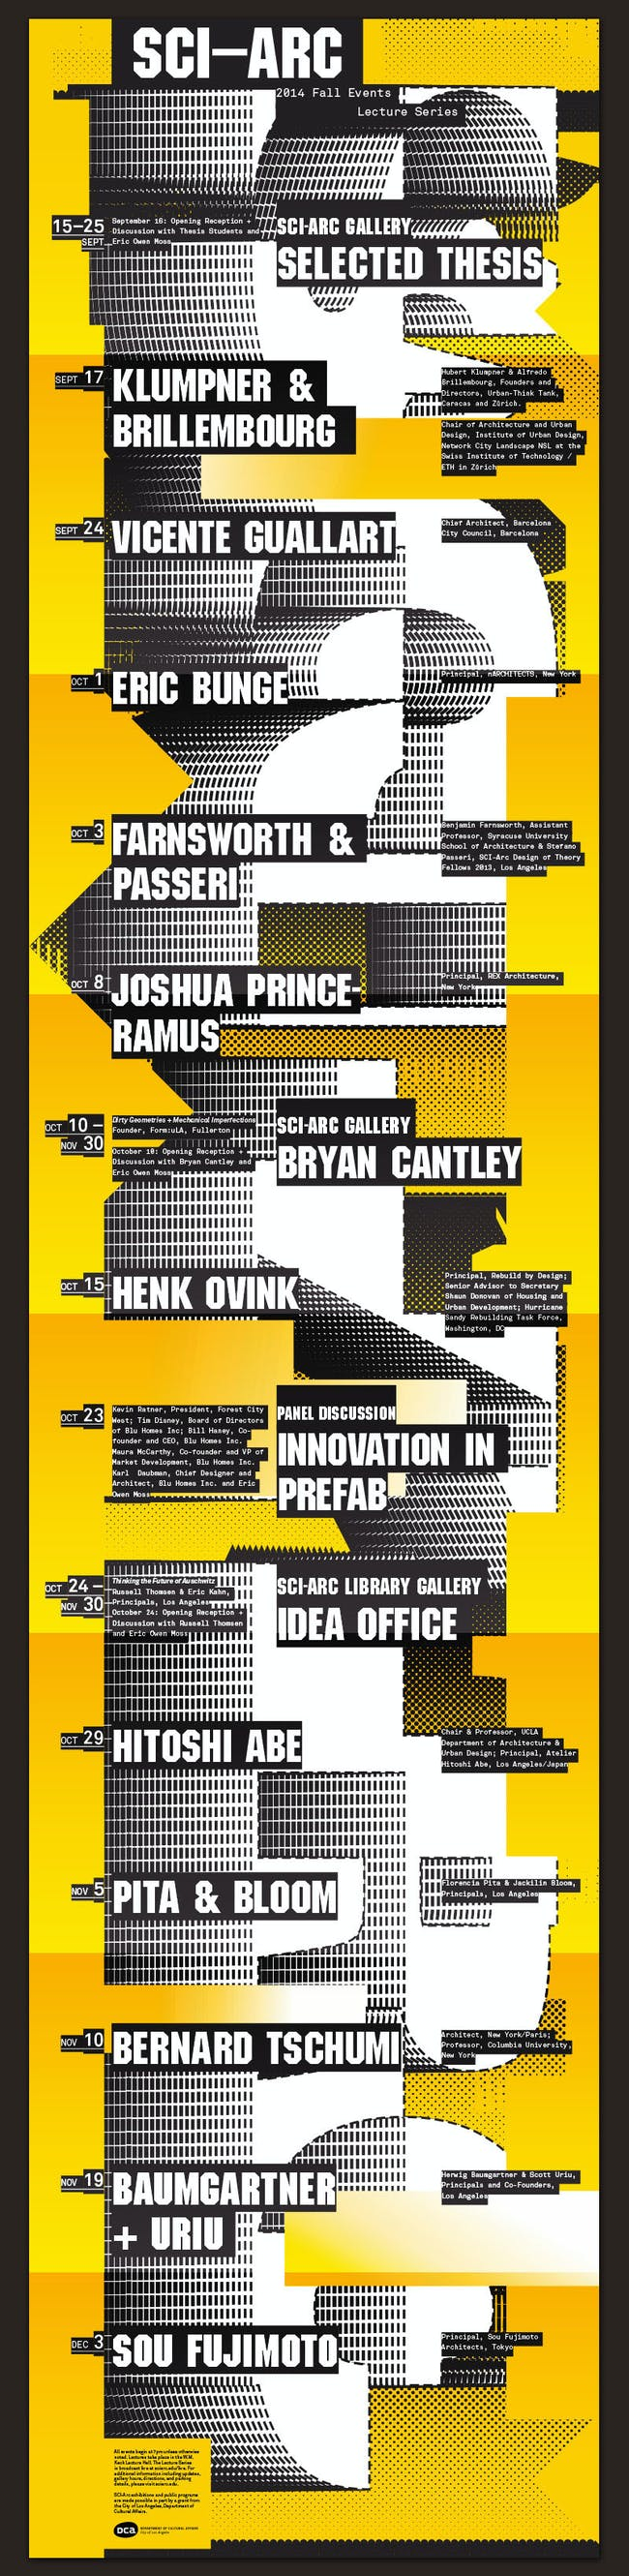 SCI-Arc Fall 2014 public lecture series (poster). Image courtesy of SCI-Arc.